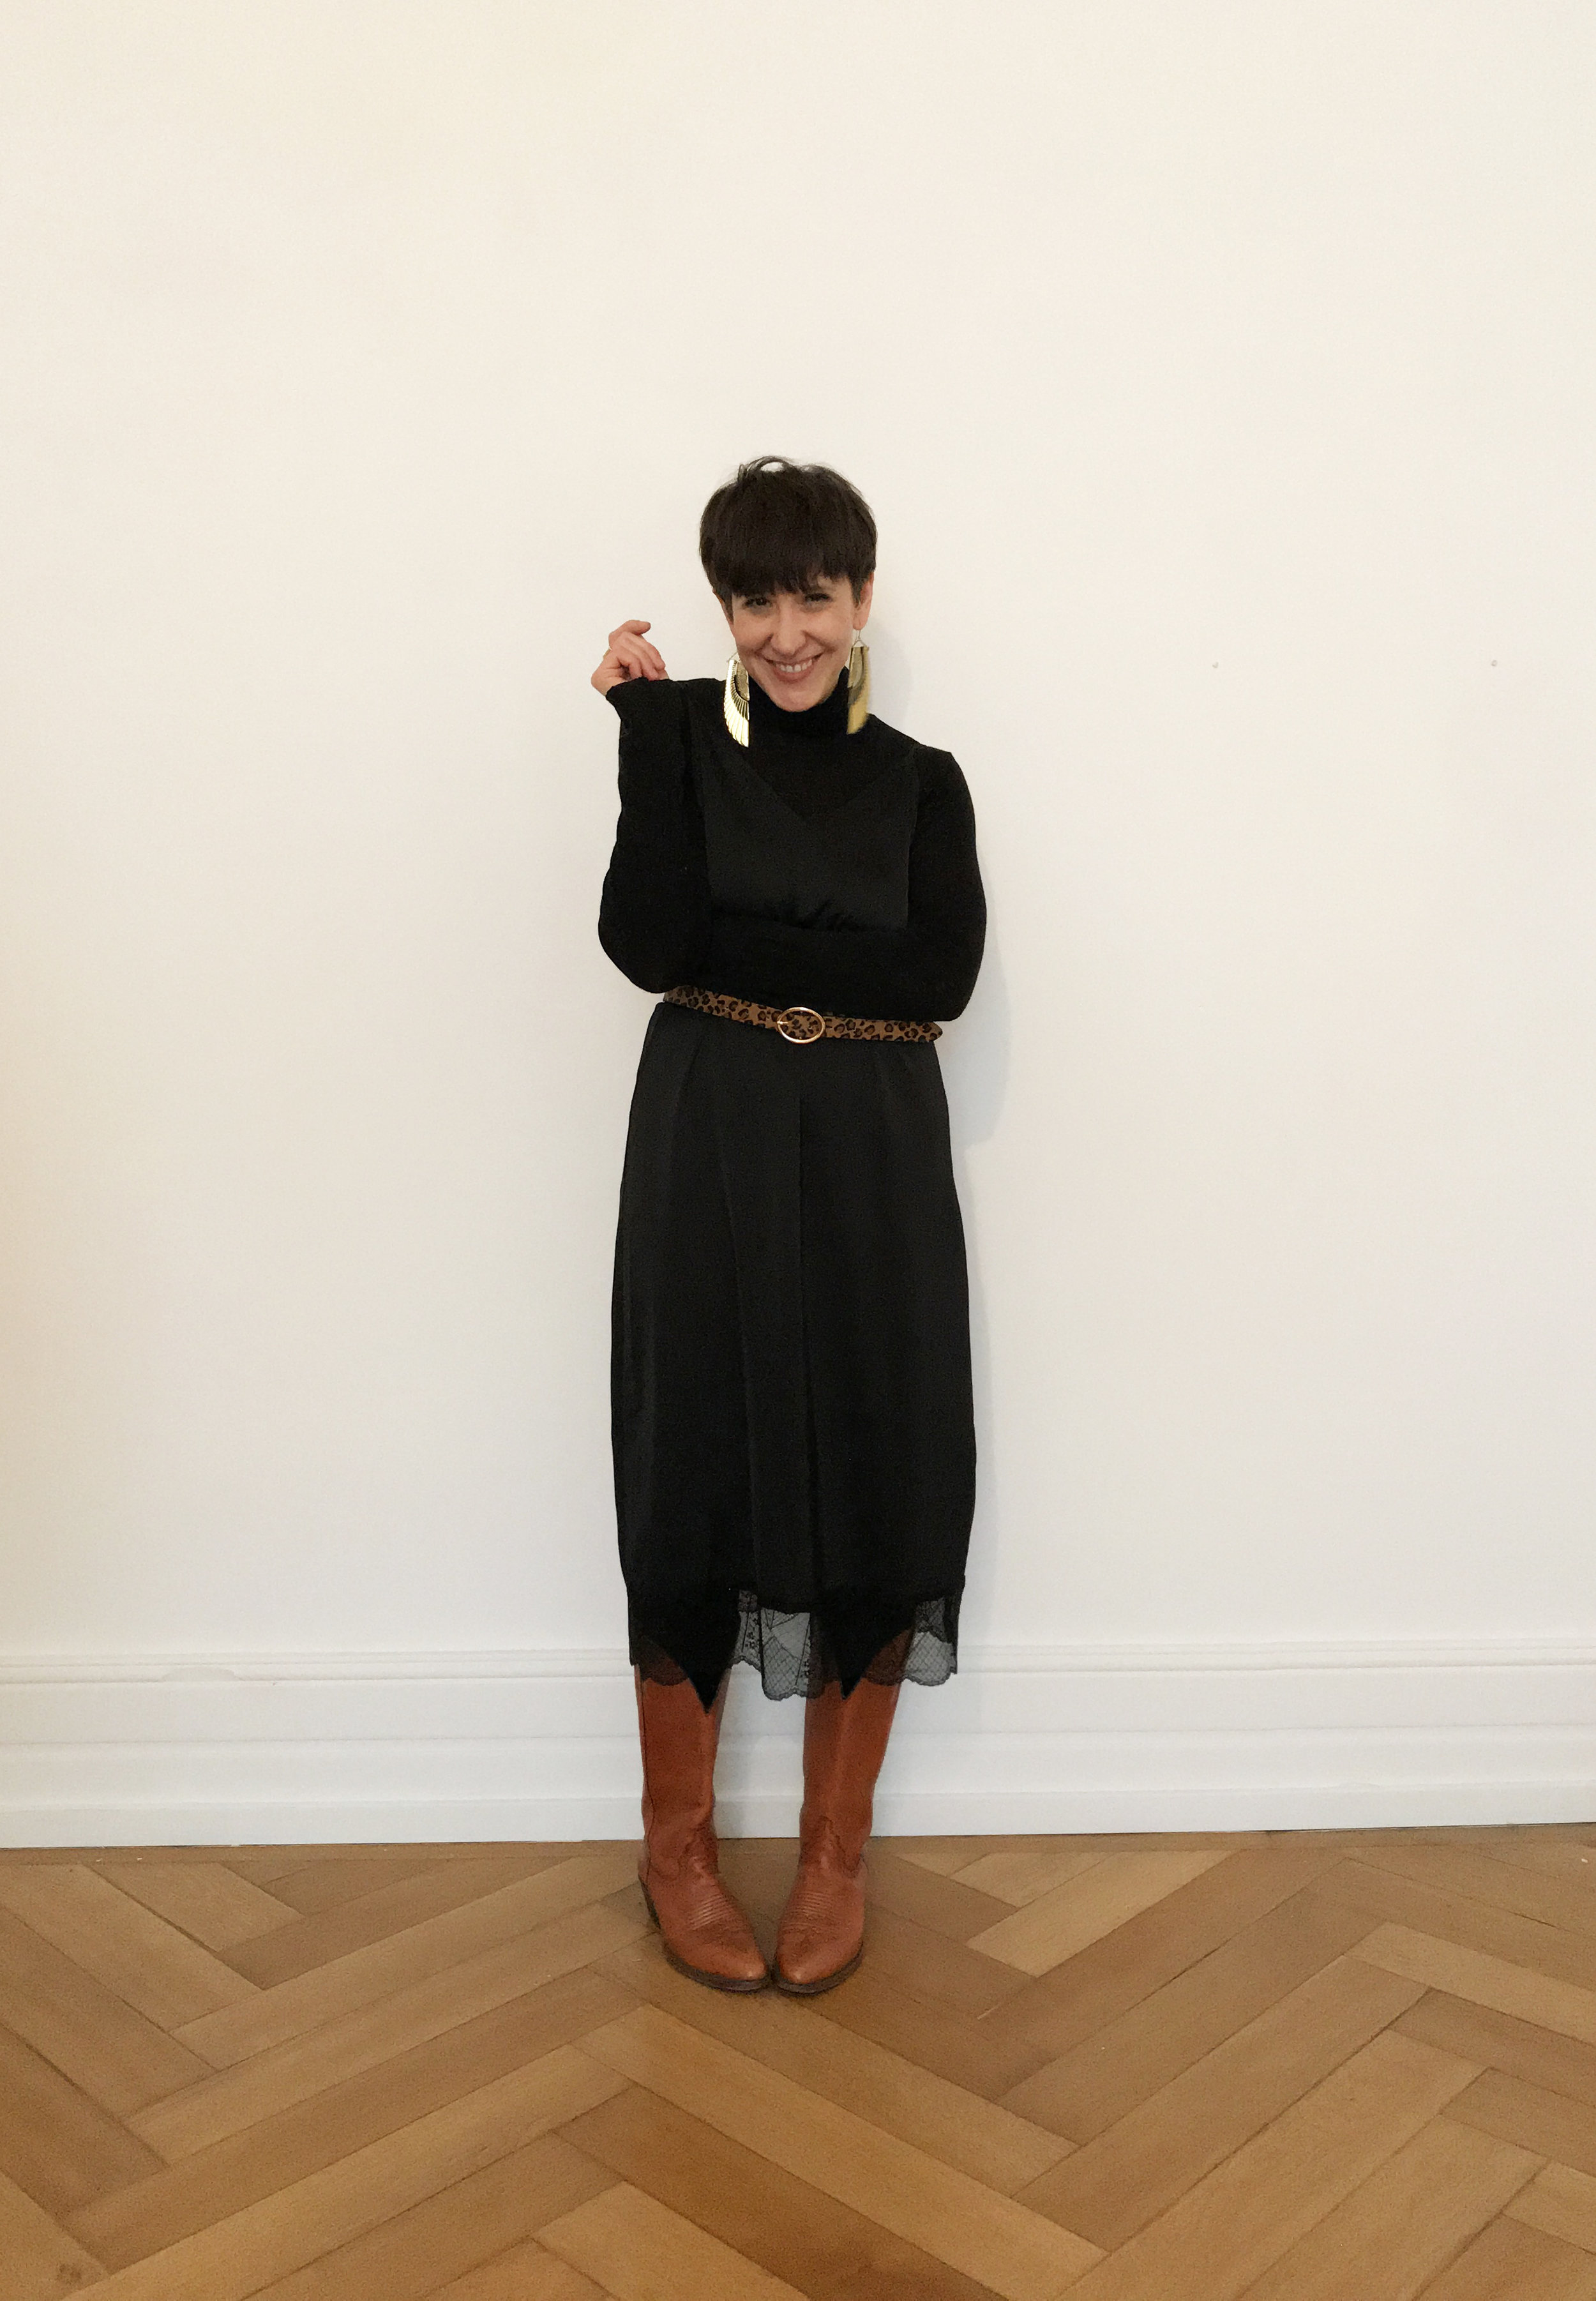 Belt and Boots - styled withCOS Roll Neck, Zara Belt, Vintage Boots, Rosita Bonita Earrings